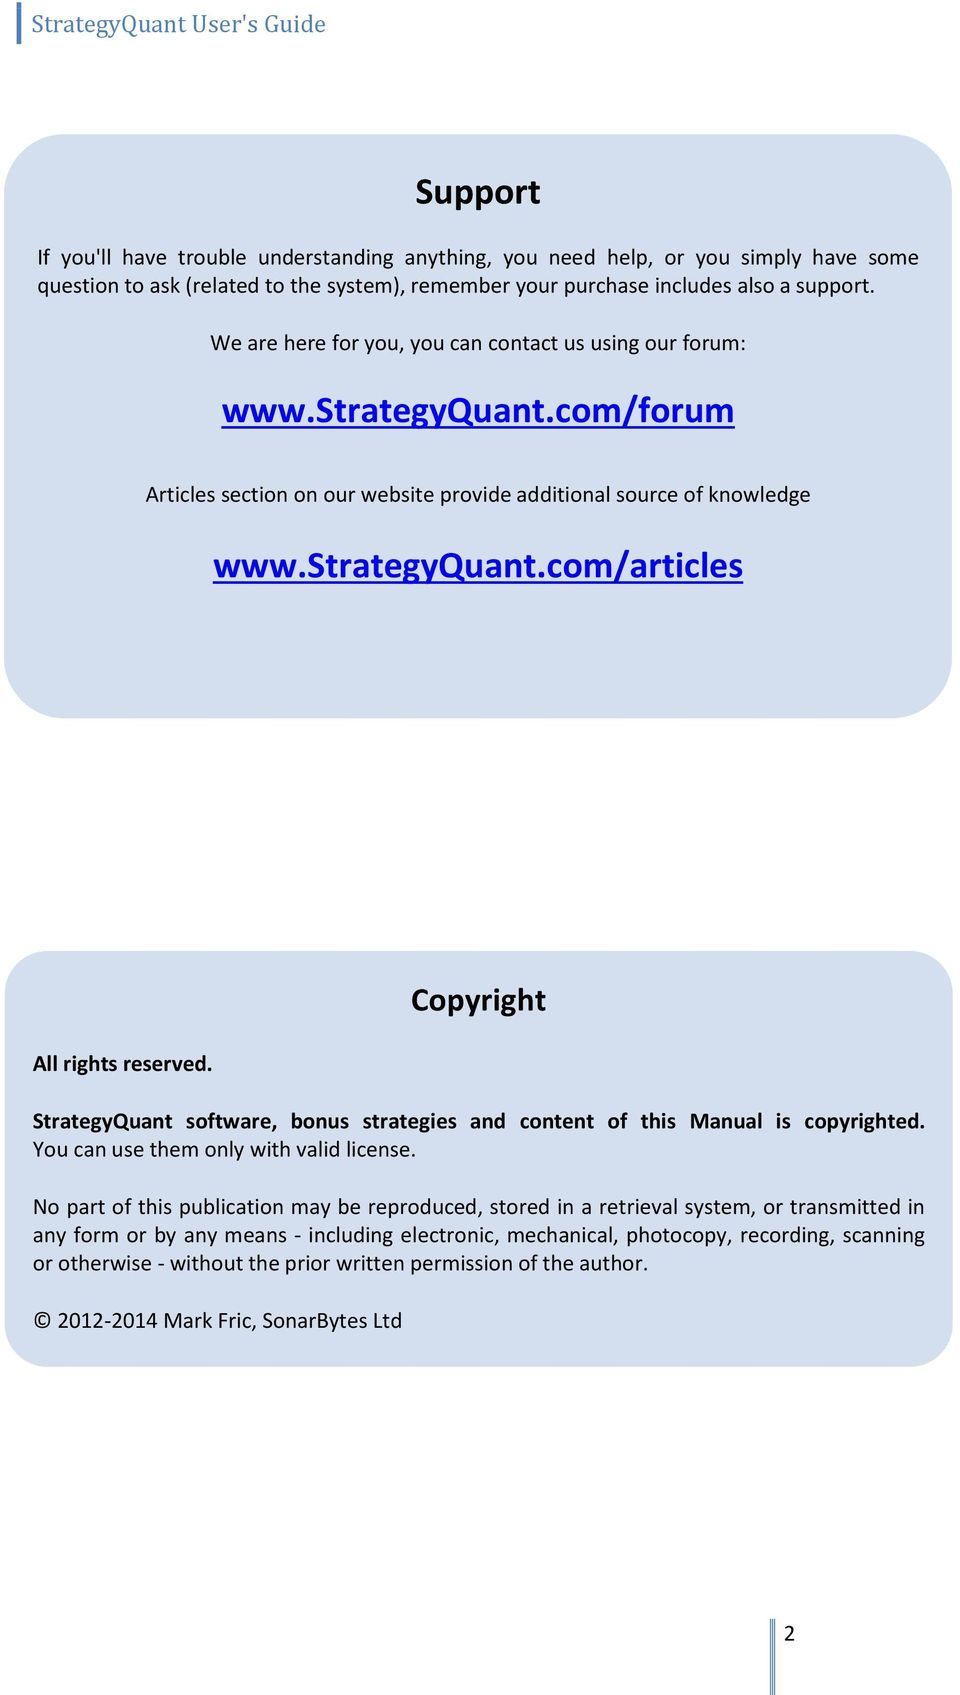 StrategyQuant  User's Guide - PDF